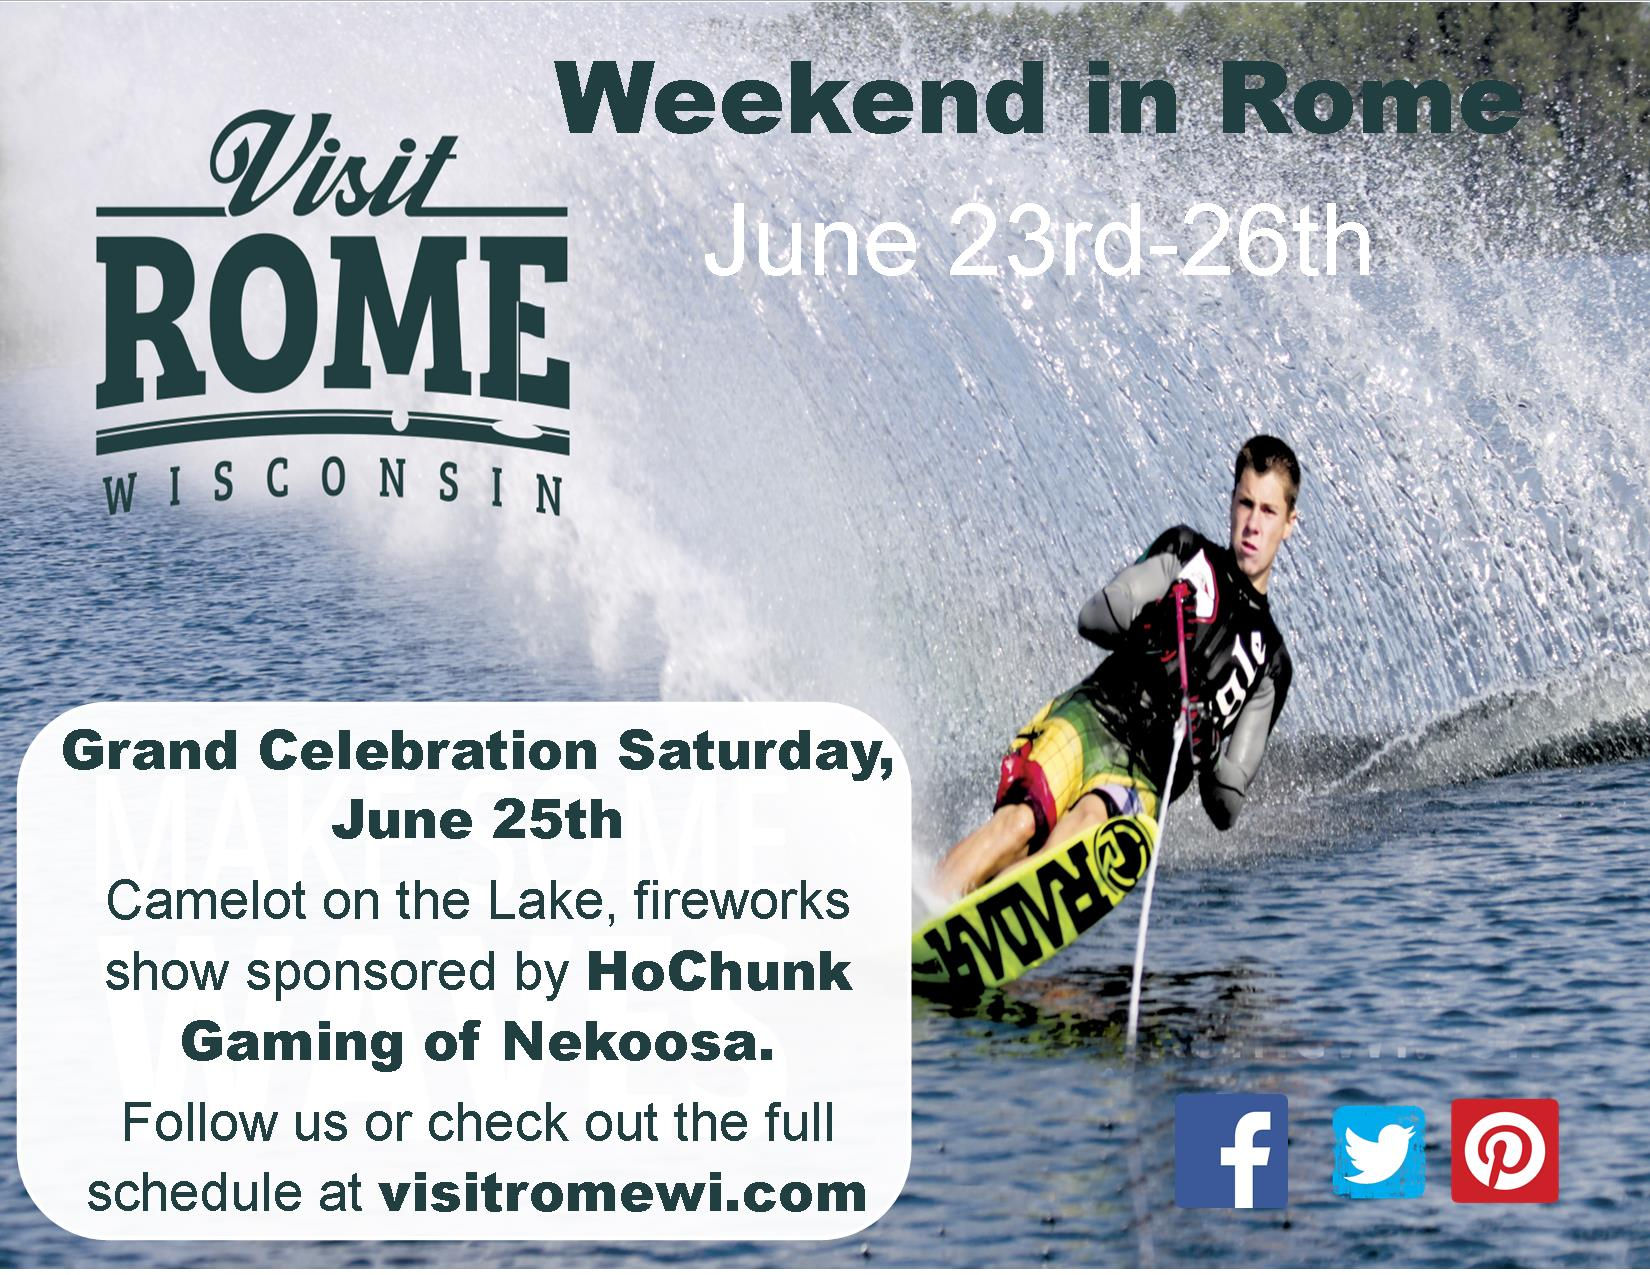 WEEKEND IN ROME AD